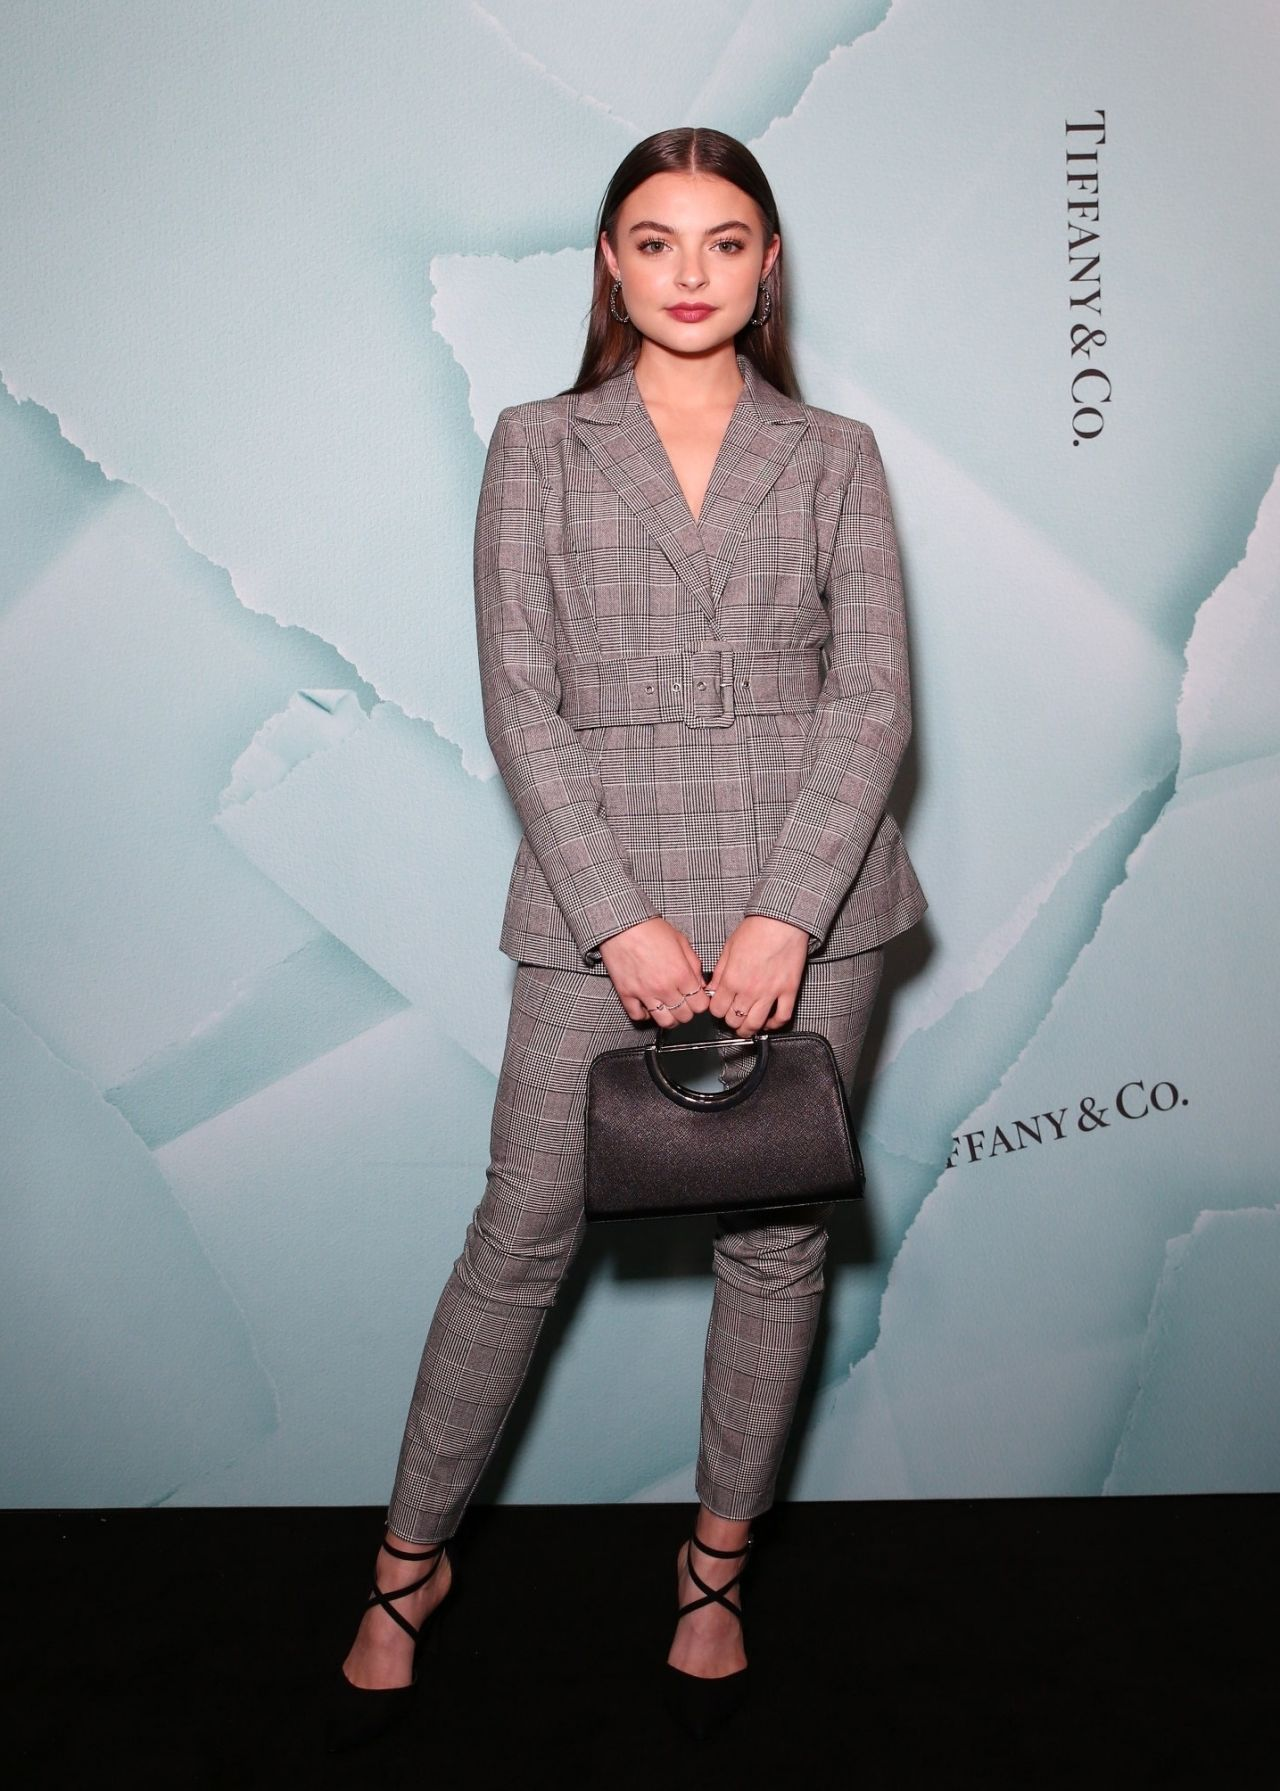 ac06b02d690 Tiarne Coupland – Tiffany   Co. Flagship Store Launch in Sydney 04 04 2019